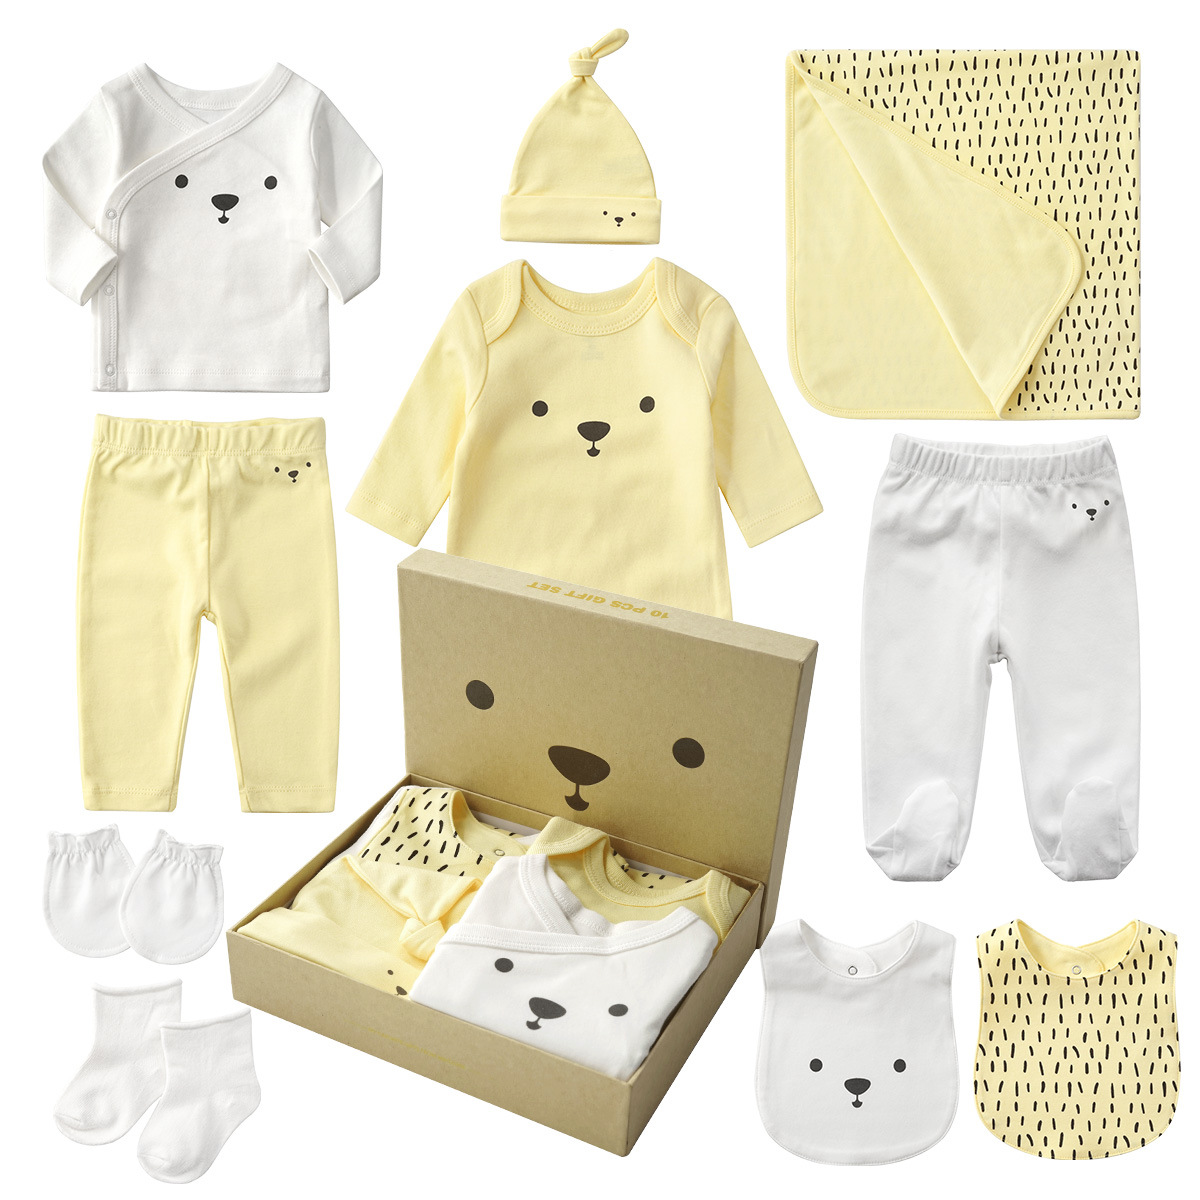 Cotton 10-piece Sets Newborn Clothes Gift Box Spring And Autumn New Born Baby Suit Mother And Baby Full Moon Kids Gift Clothes cotton 10 piece sets newborn clothes gift box spring and autumn new born baby suit mother and baby full moon kids gift clothes